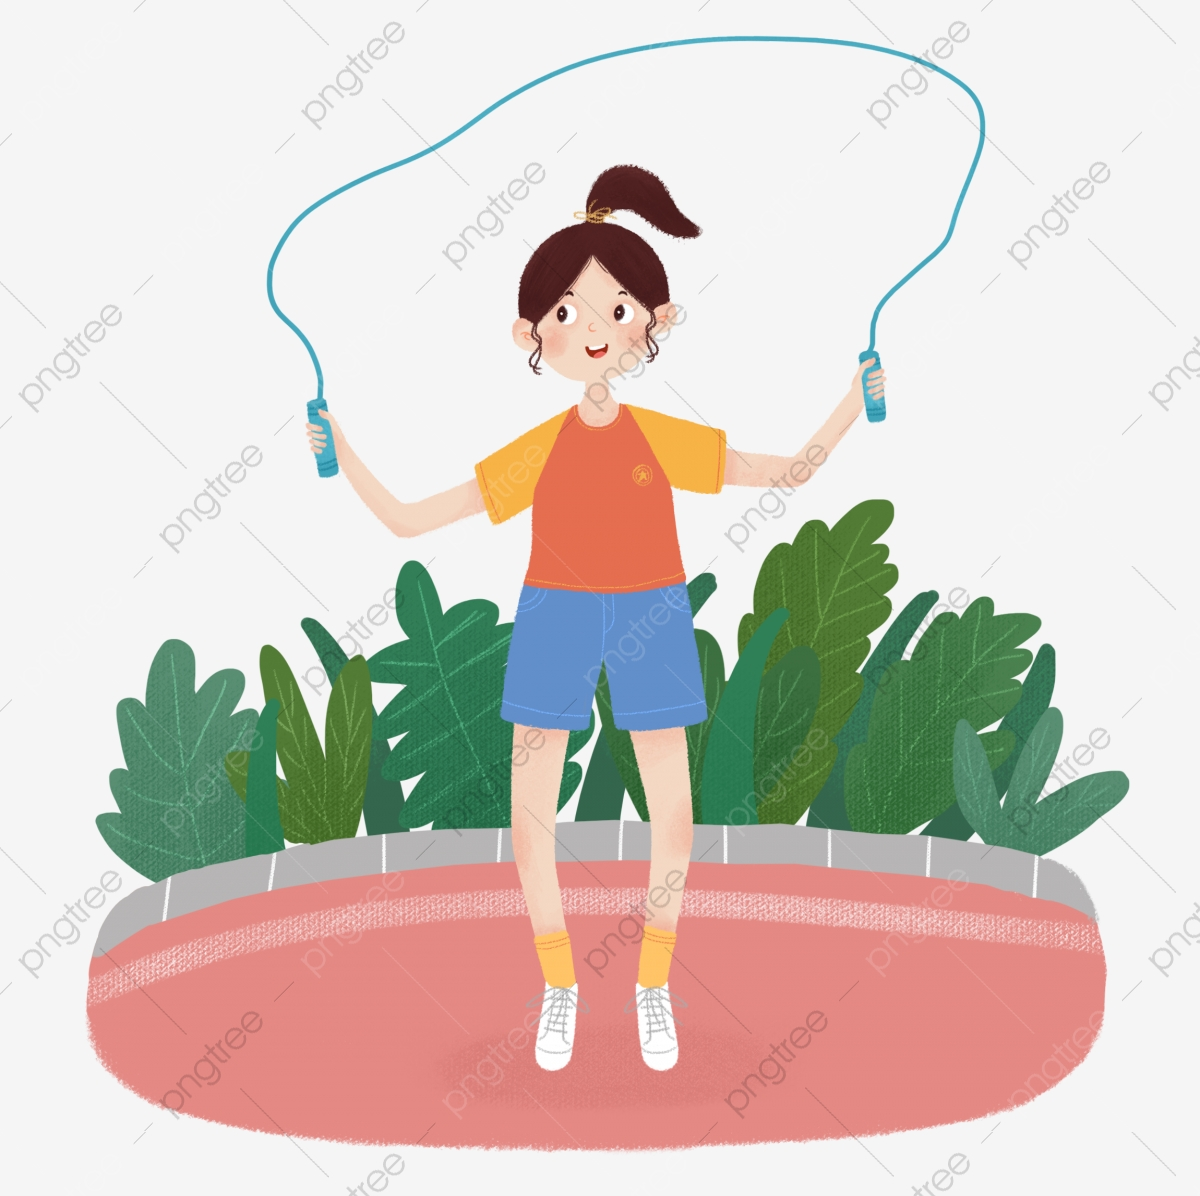 Sport Girl Jumping Rope Exercise Illustration Sport Fitness Figure Illustration Girl Jumping Rope Exercise Exercise Fitness Png Transparent Clipart Image And Psd File For Free Download